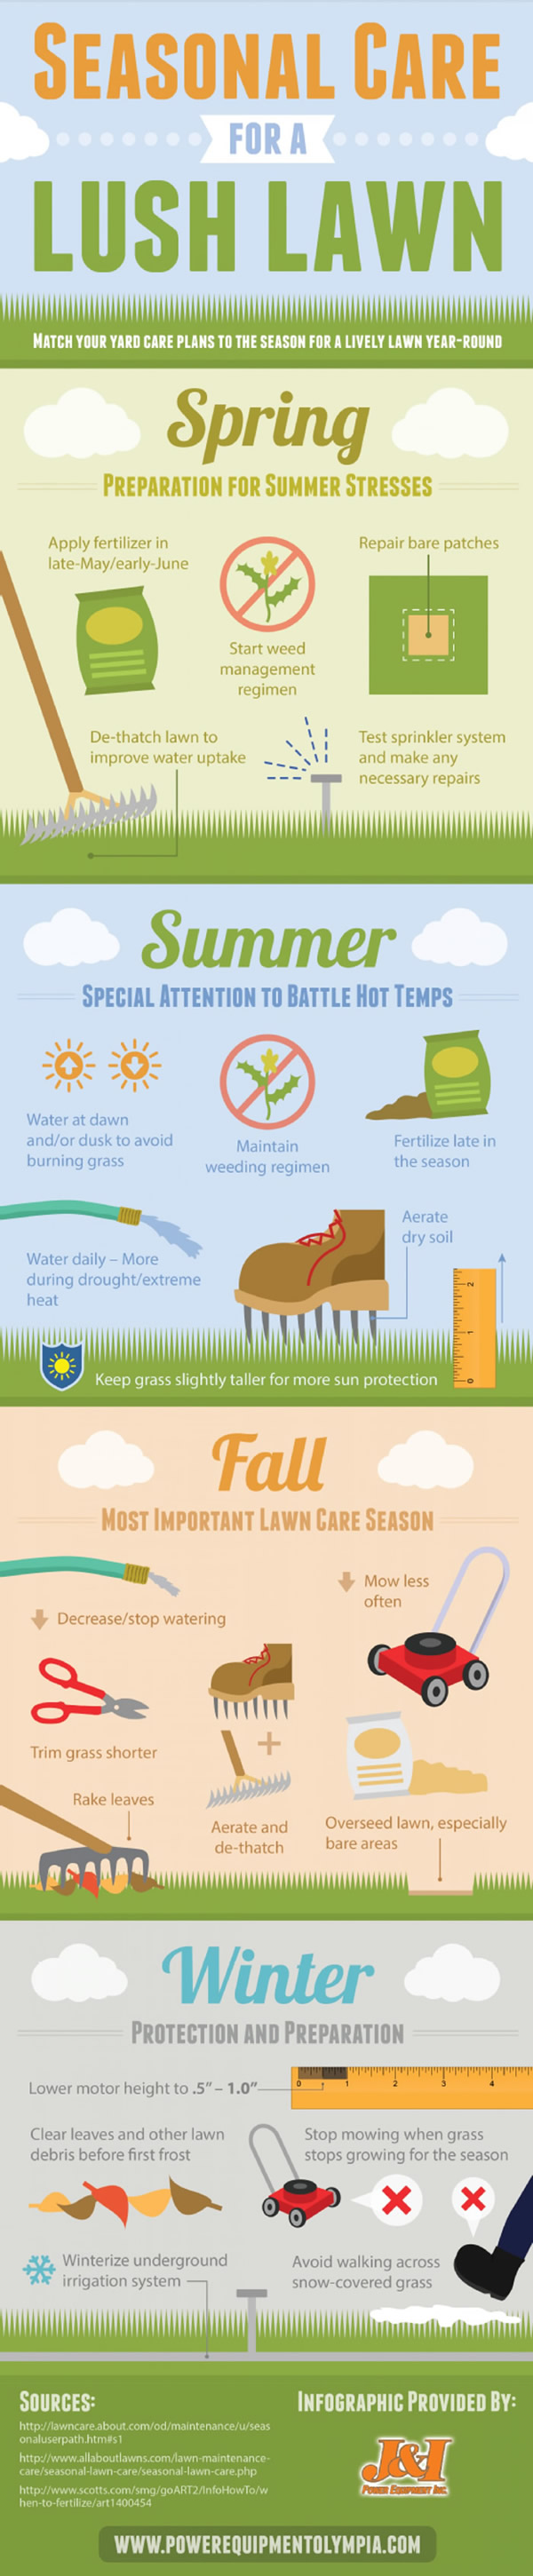 Seasonal Care for A Lush Lawn Ultimate Guide